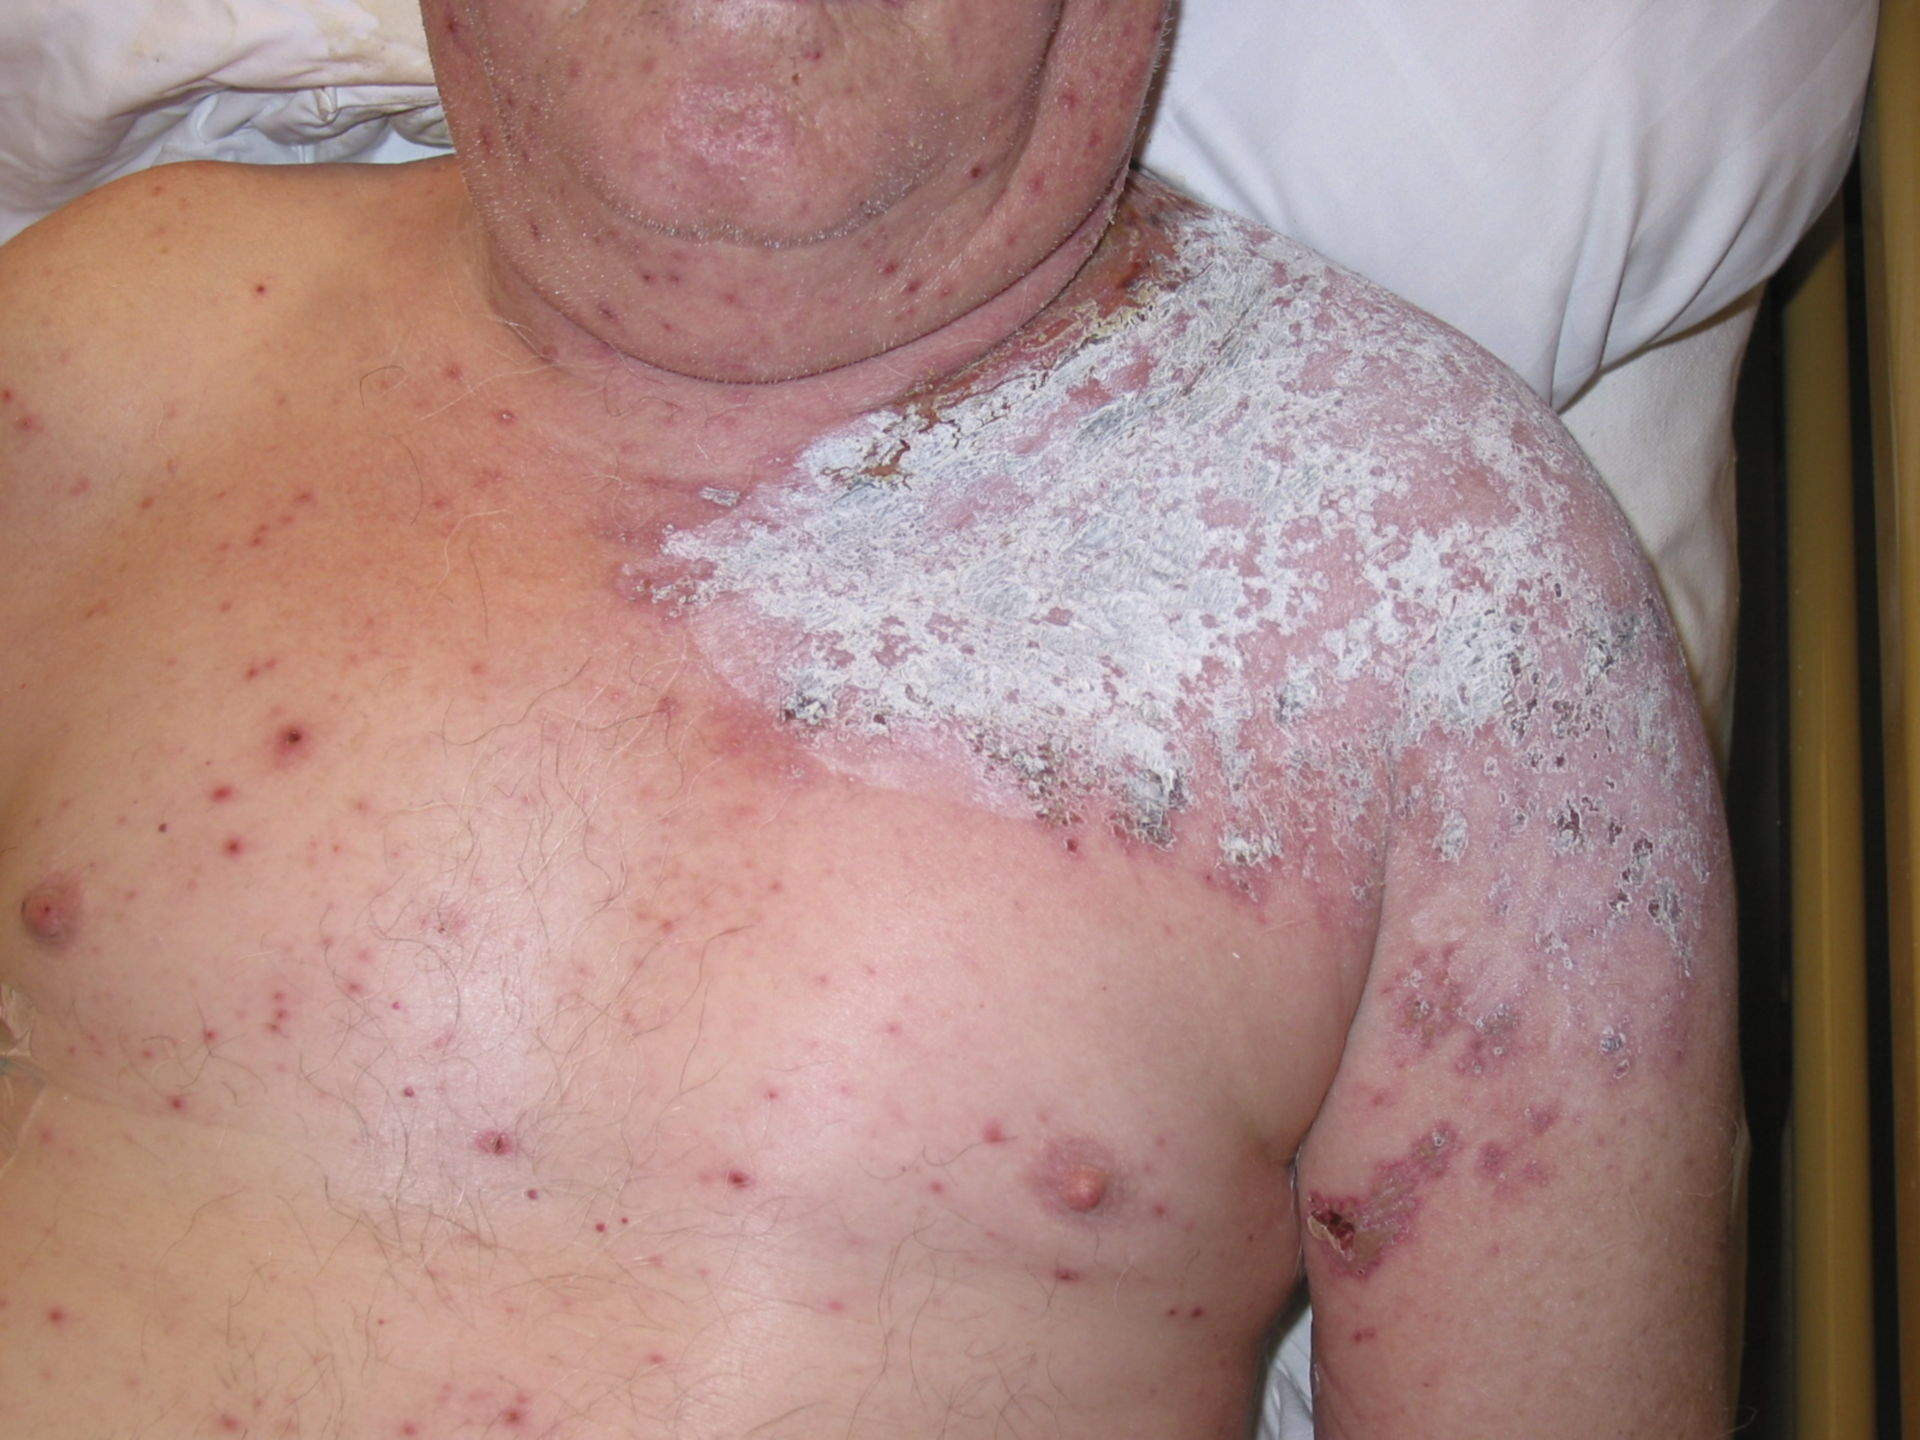 Shingles - herpes zoster thoracicus